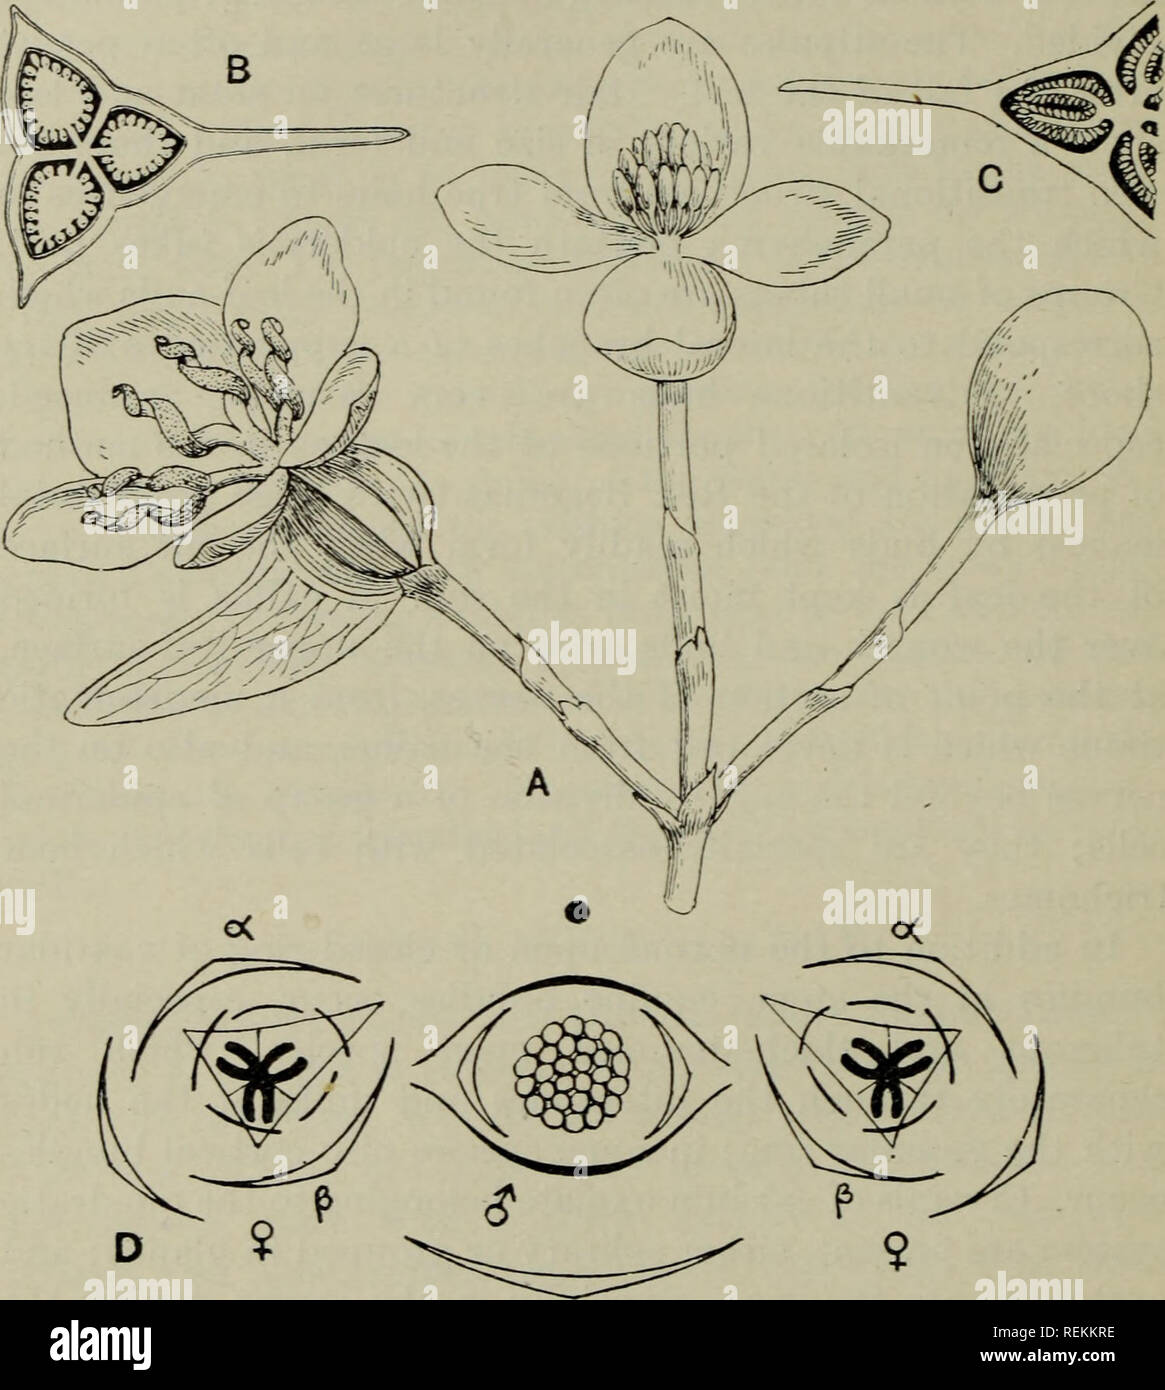 The Classification Of Flowering Plants Plants 230 Flowerixg Plants Sepals Except In Begoniella And The Female Flower Of Sym Begonia Where They Unite To Form A Tube The Perianth Leaves Are Free